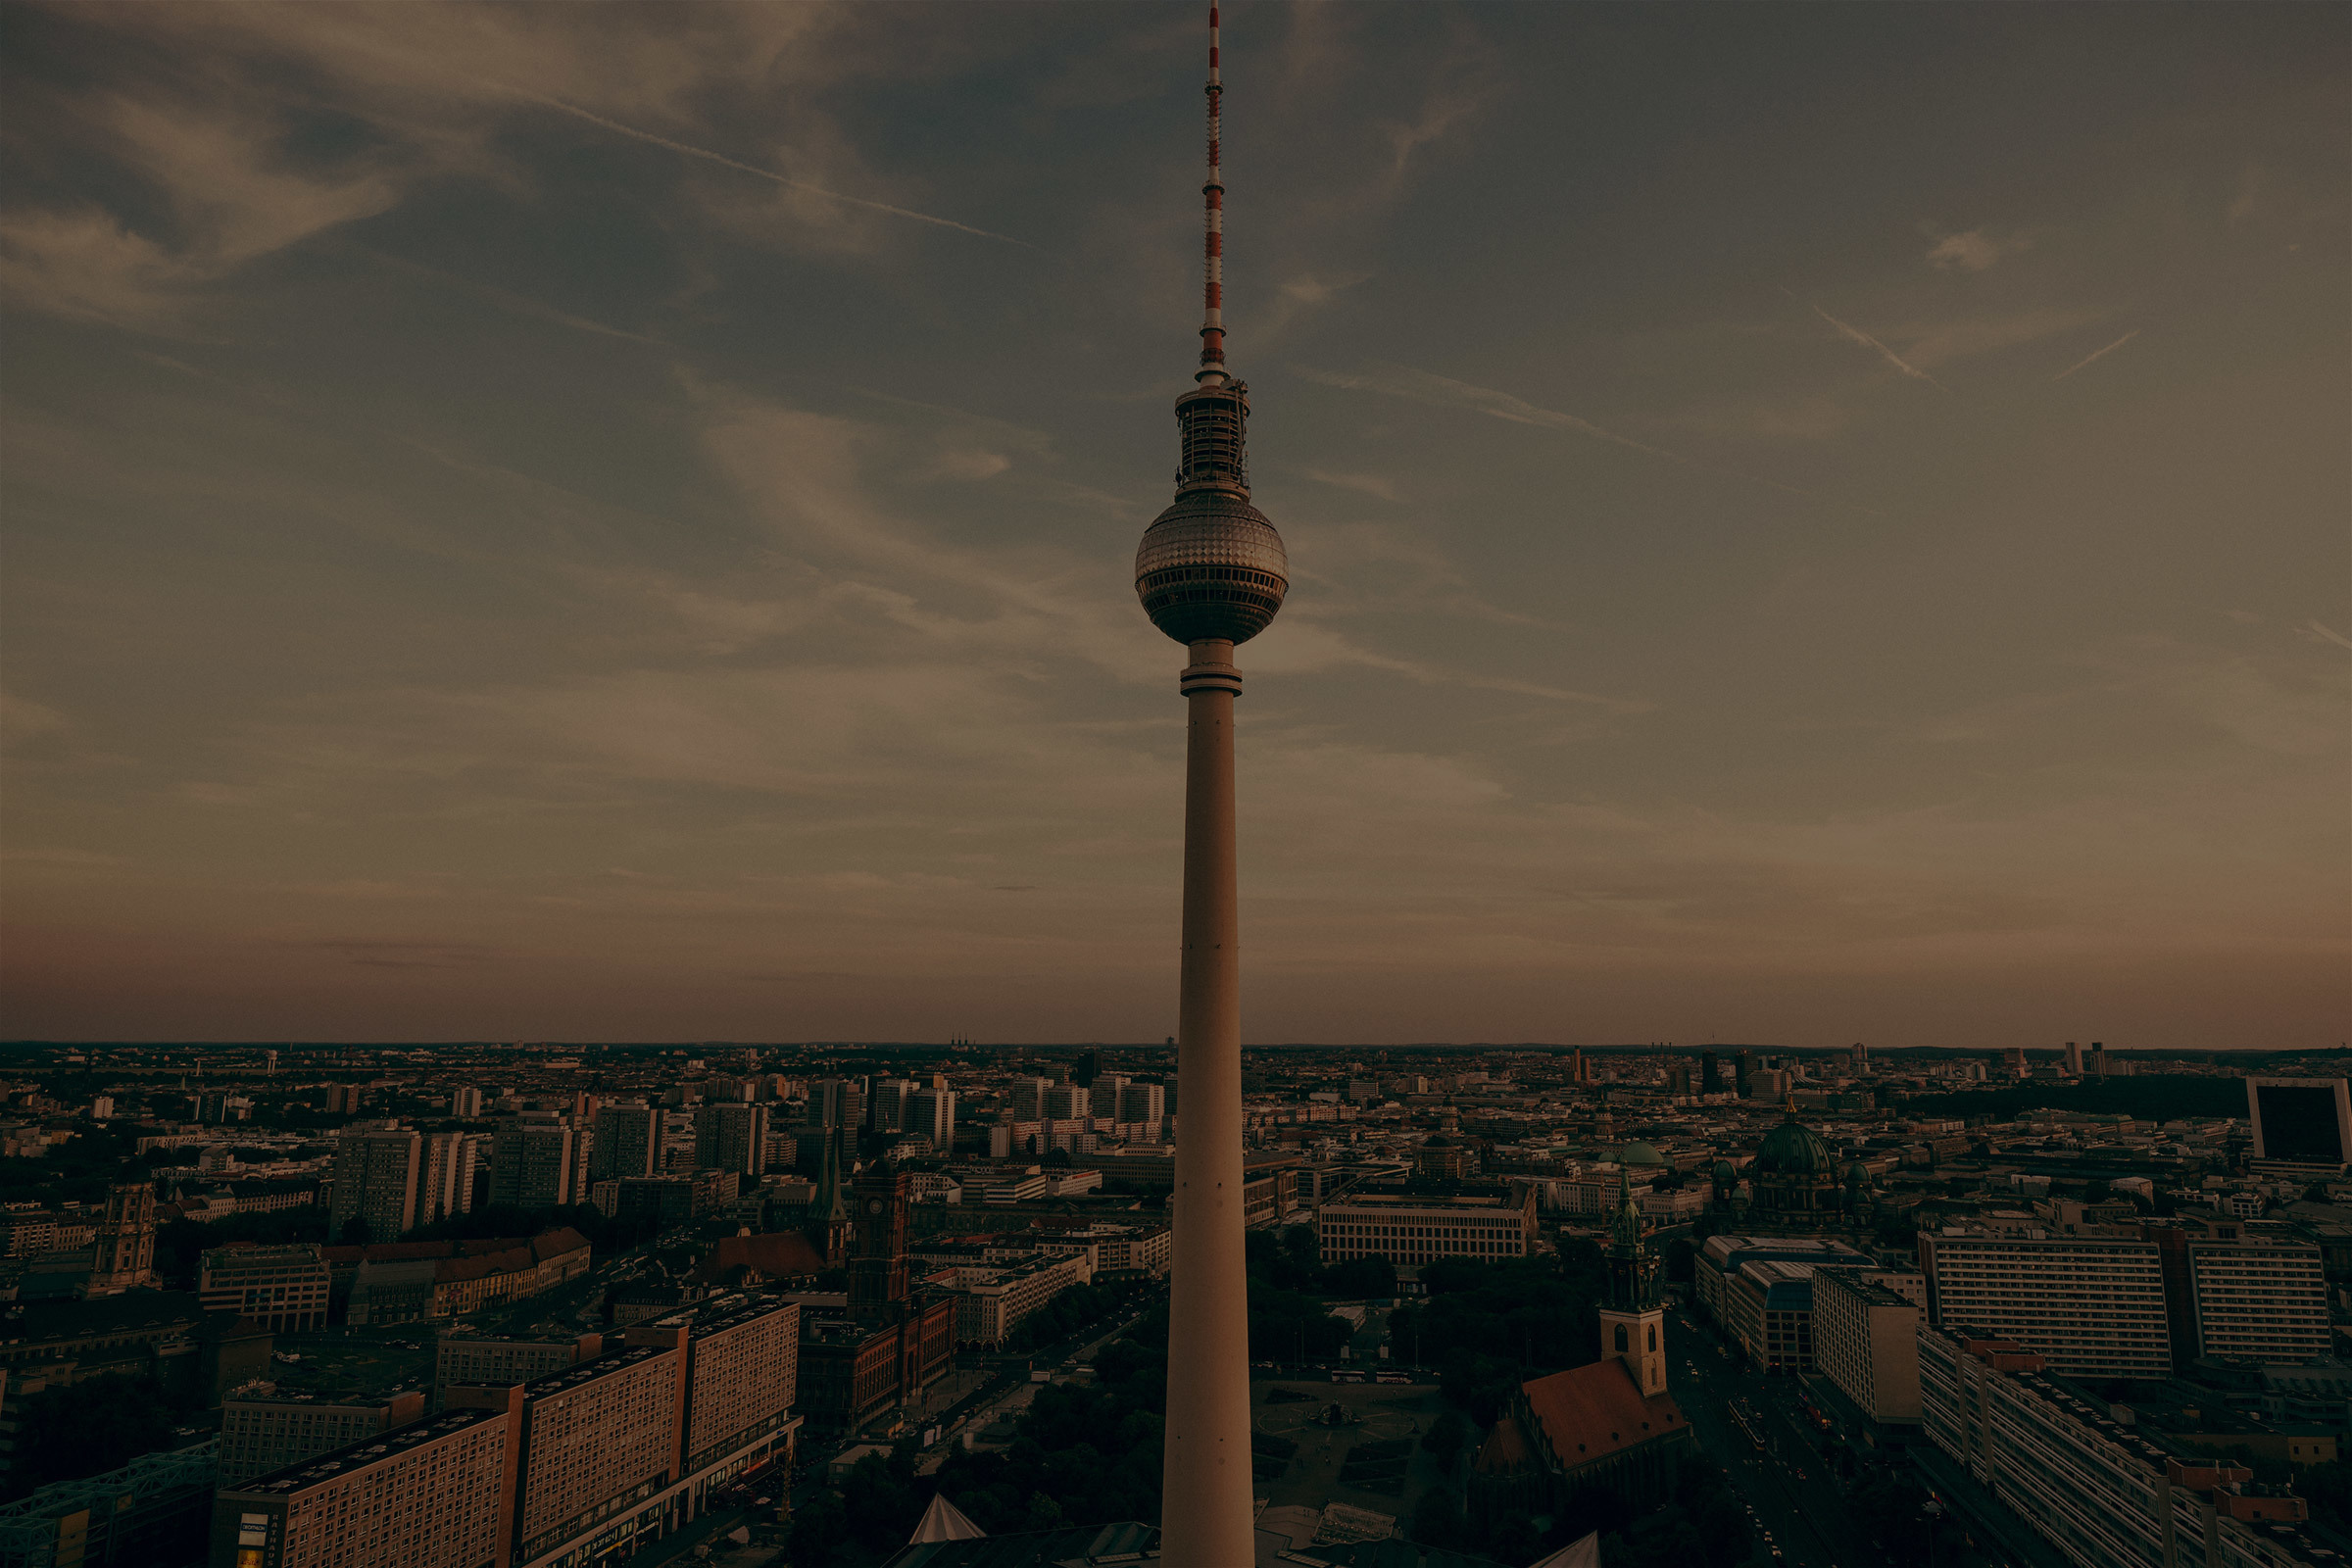 Berlin translator agency for notarized translations and certified translations